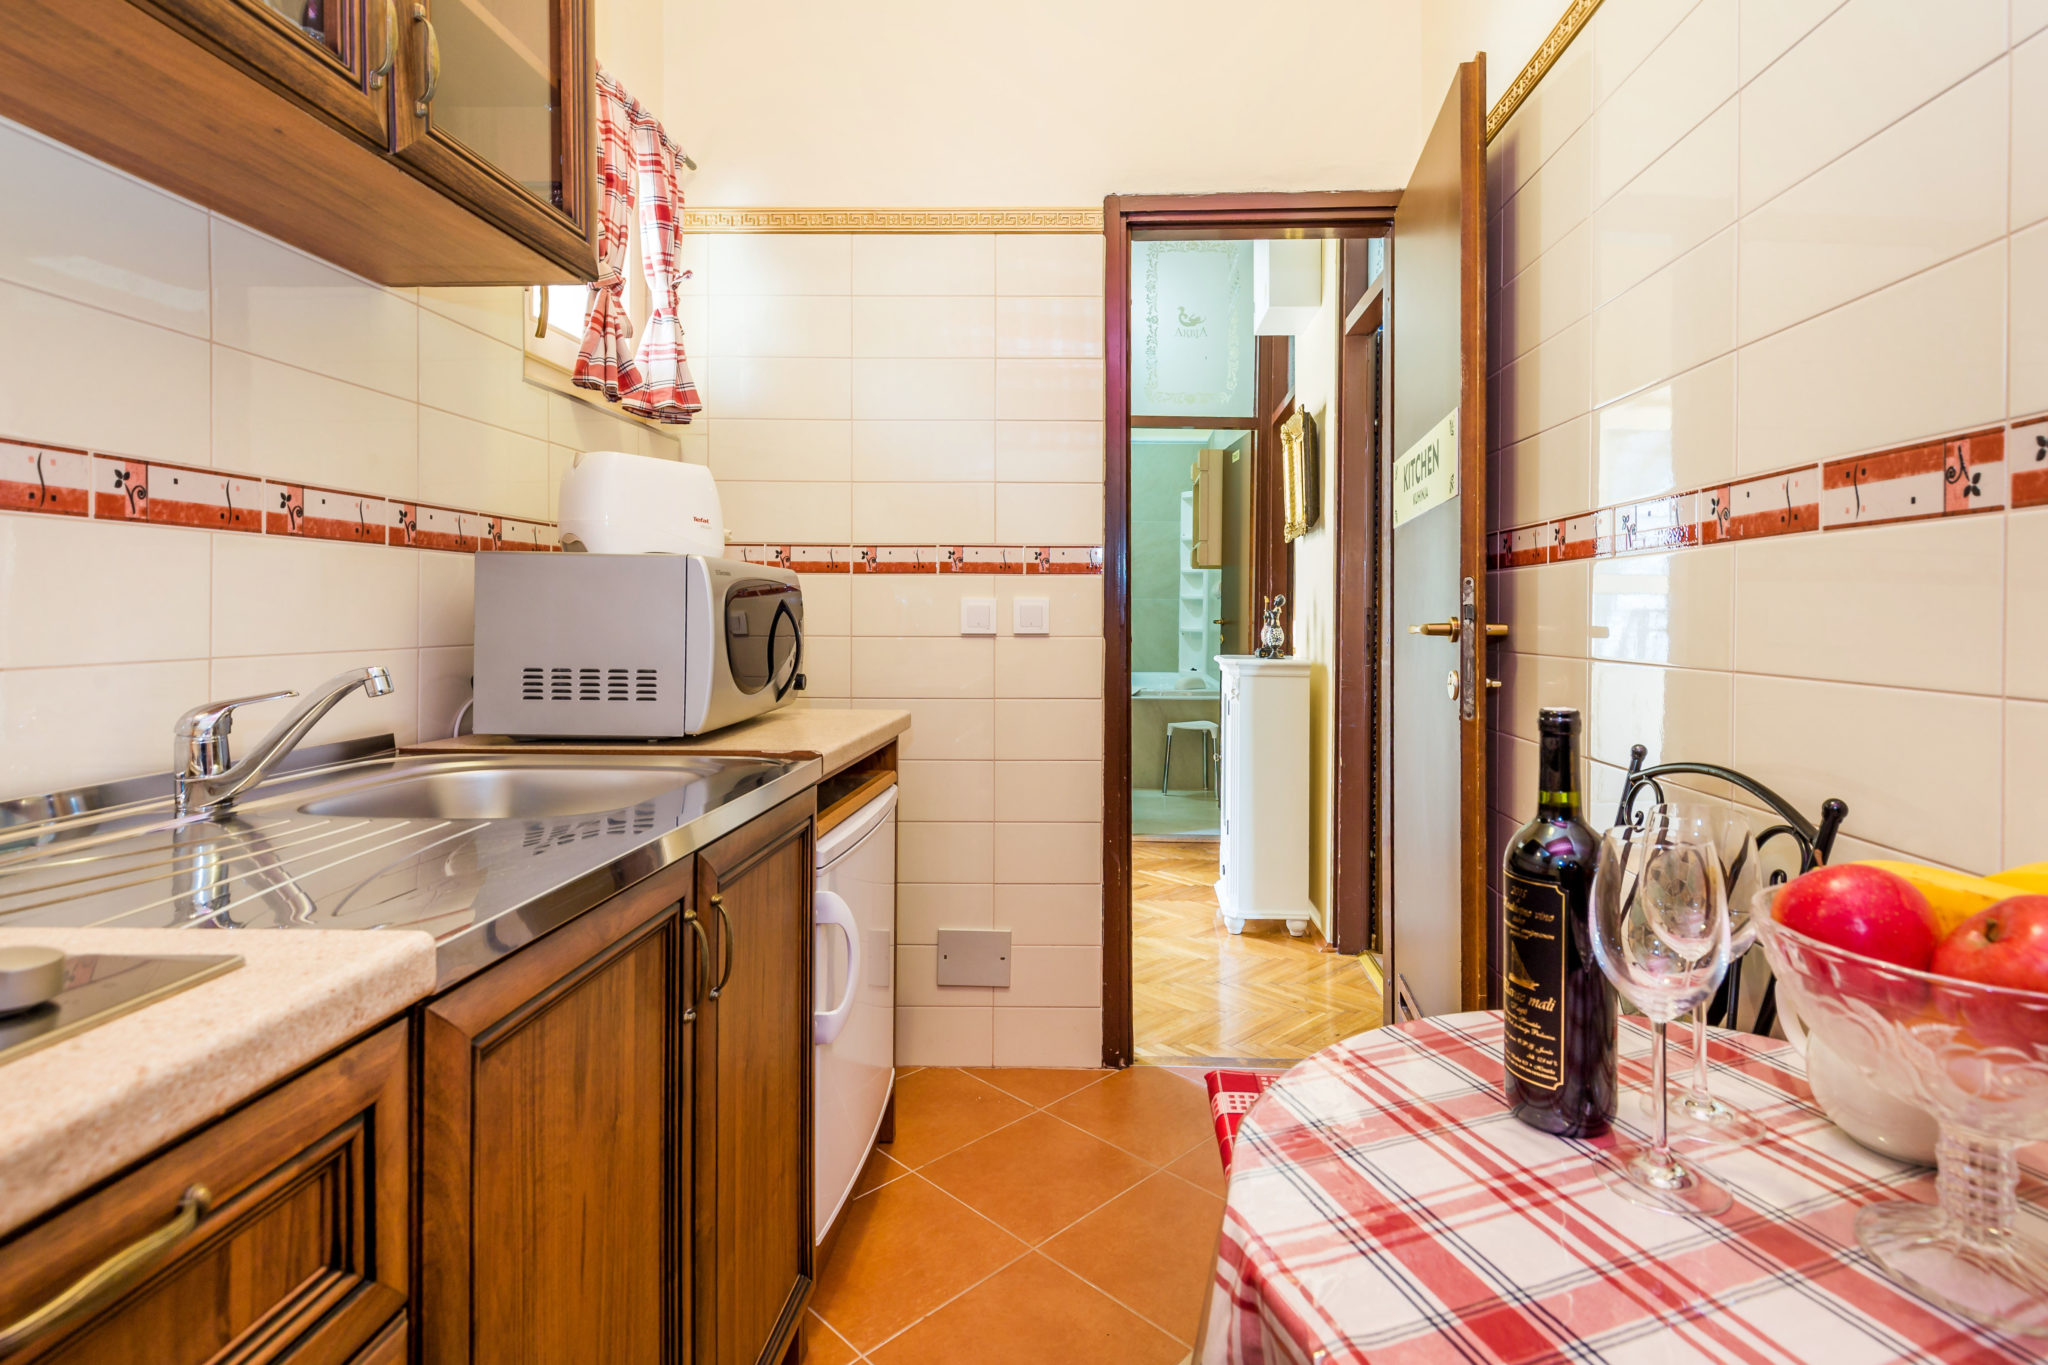 Ville Arbia Accommodation Premium - Rooms for rent with private bathroom and kitchen